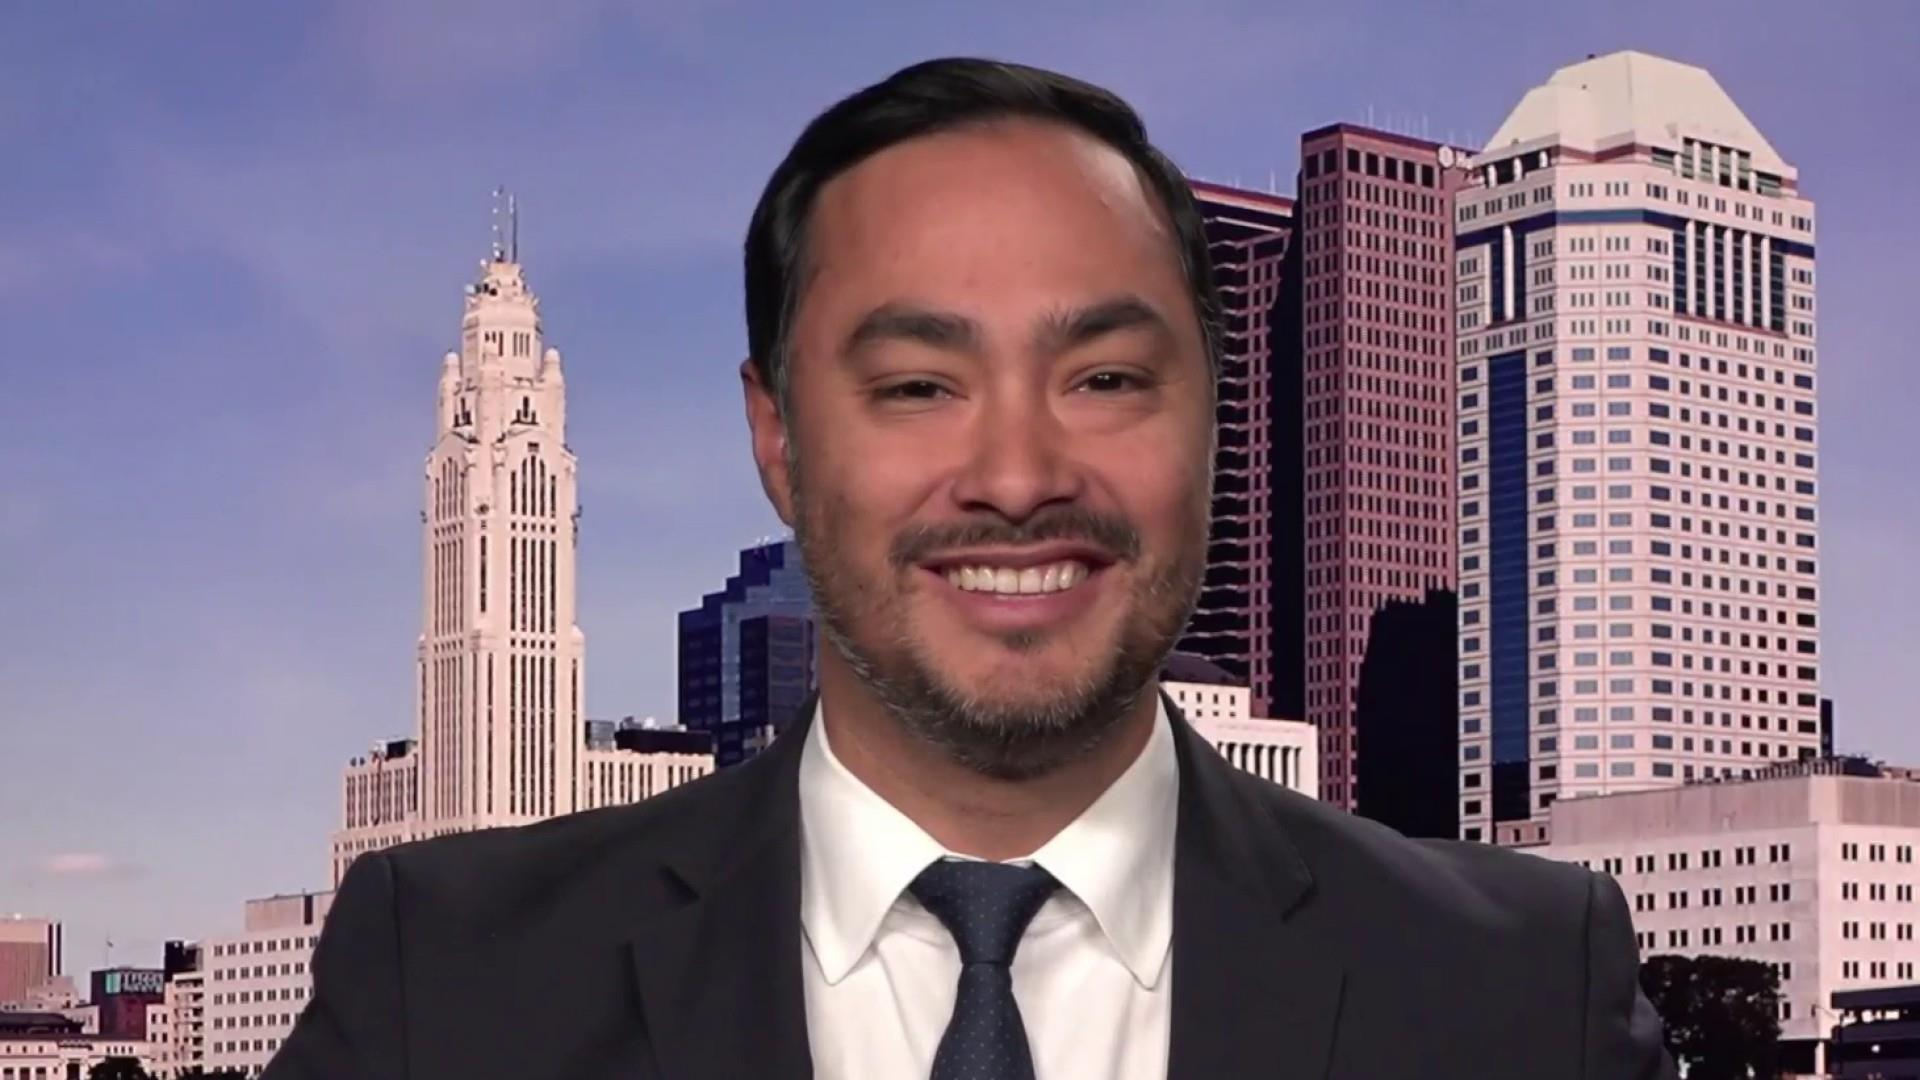 Rep. Castro: Trump 'has only dug himself into a deeper hole'